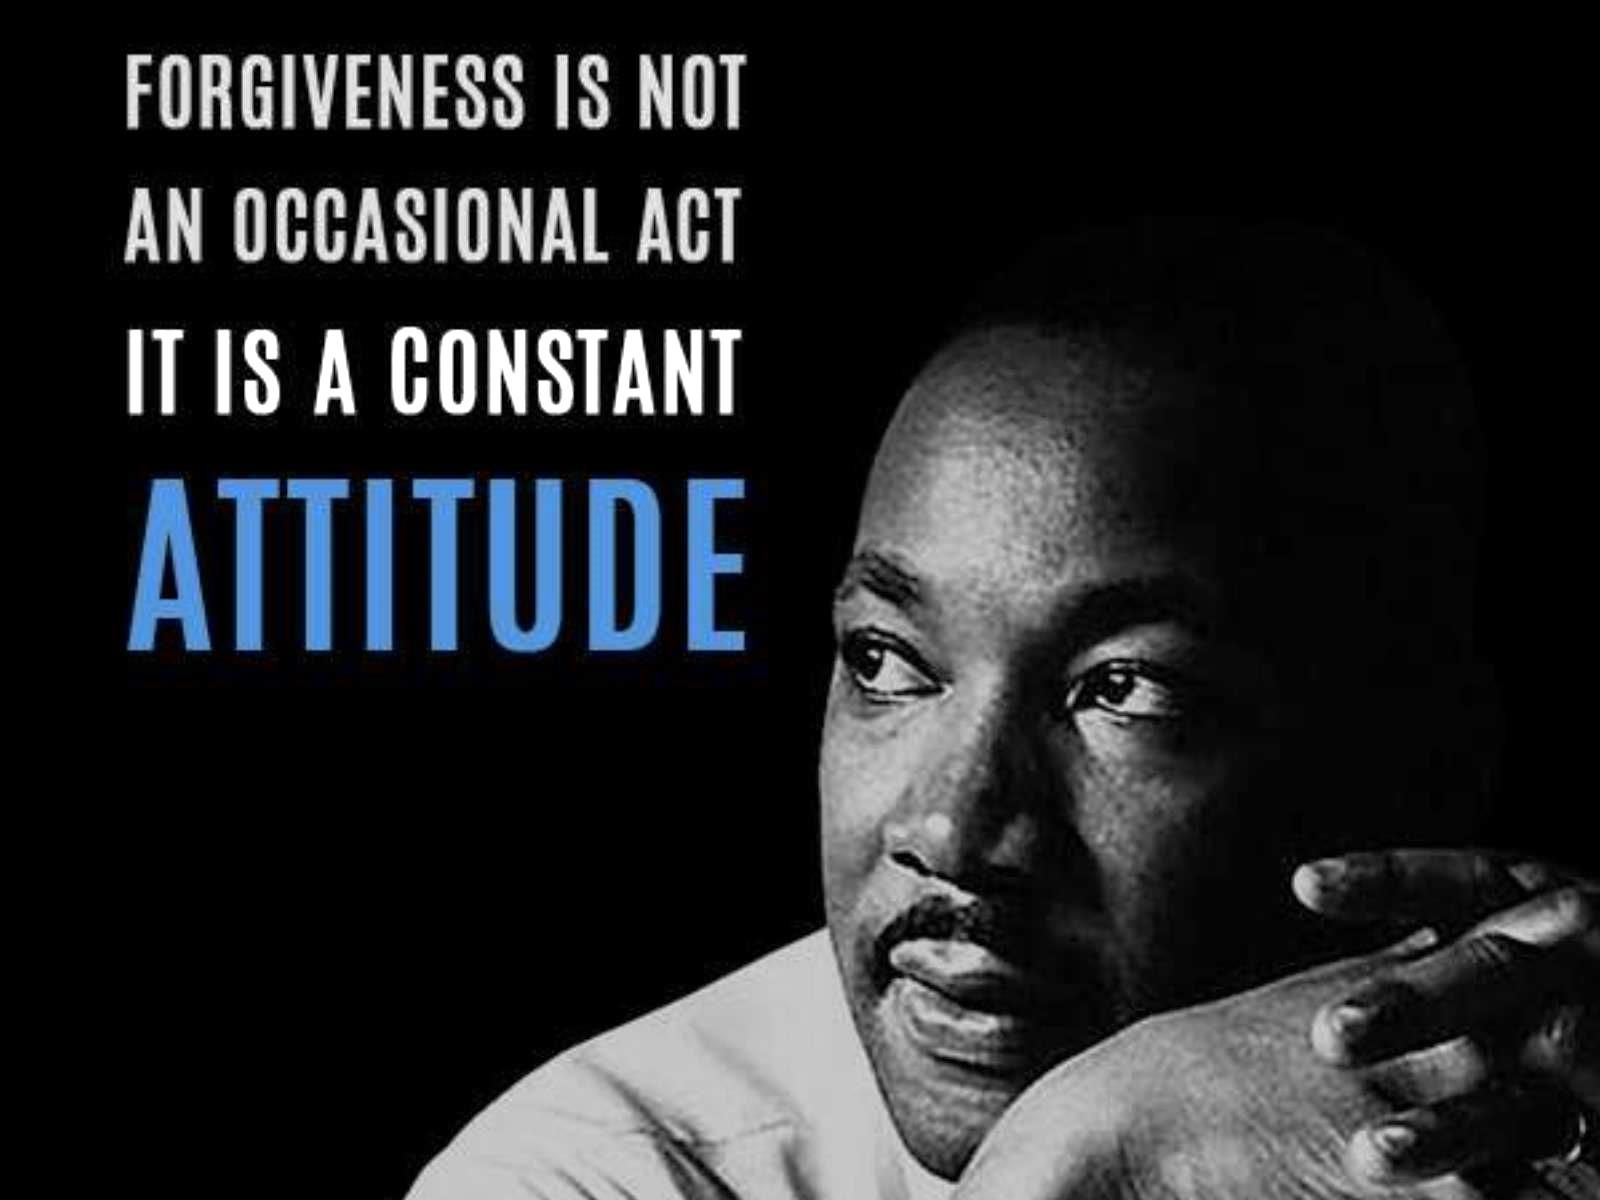 mlk quote education Google Search King quotes